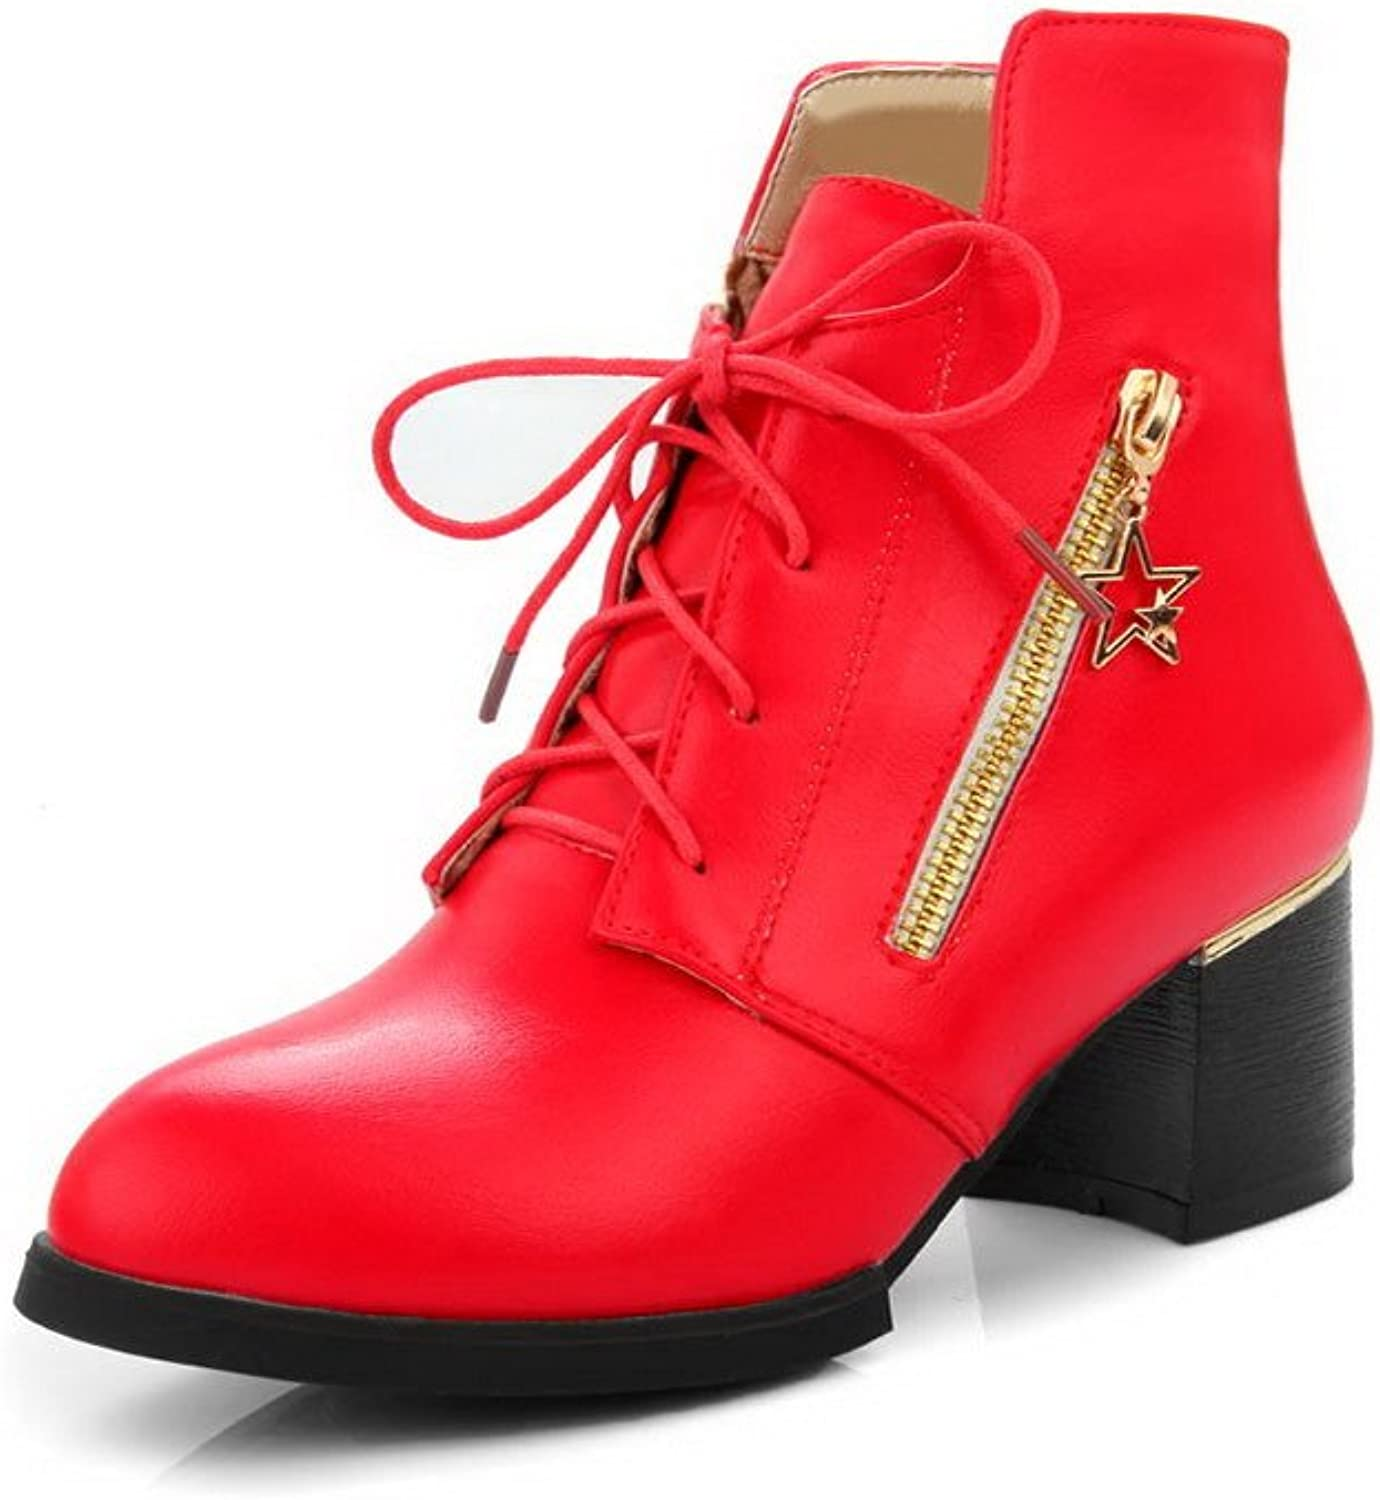 WeenFashion Women's Low Top Solid Lace up Pointed Closed Toe Kitten Heels Boots